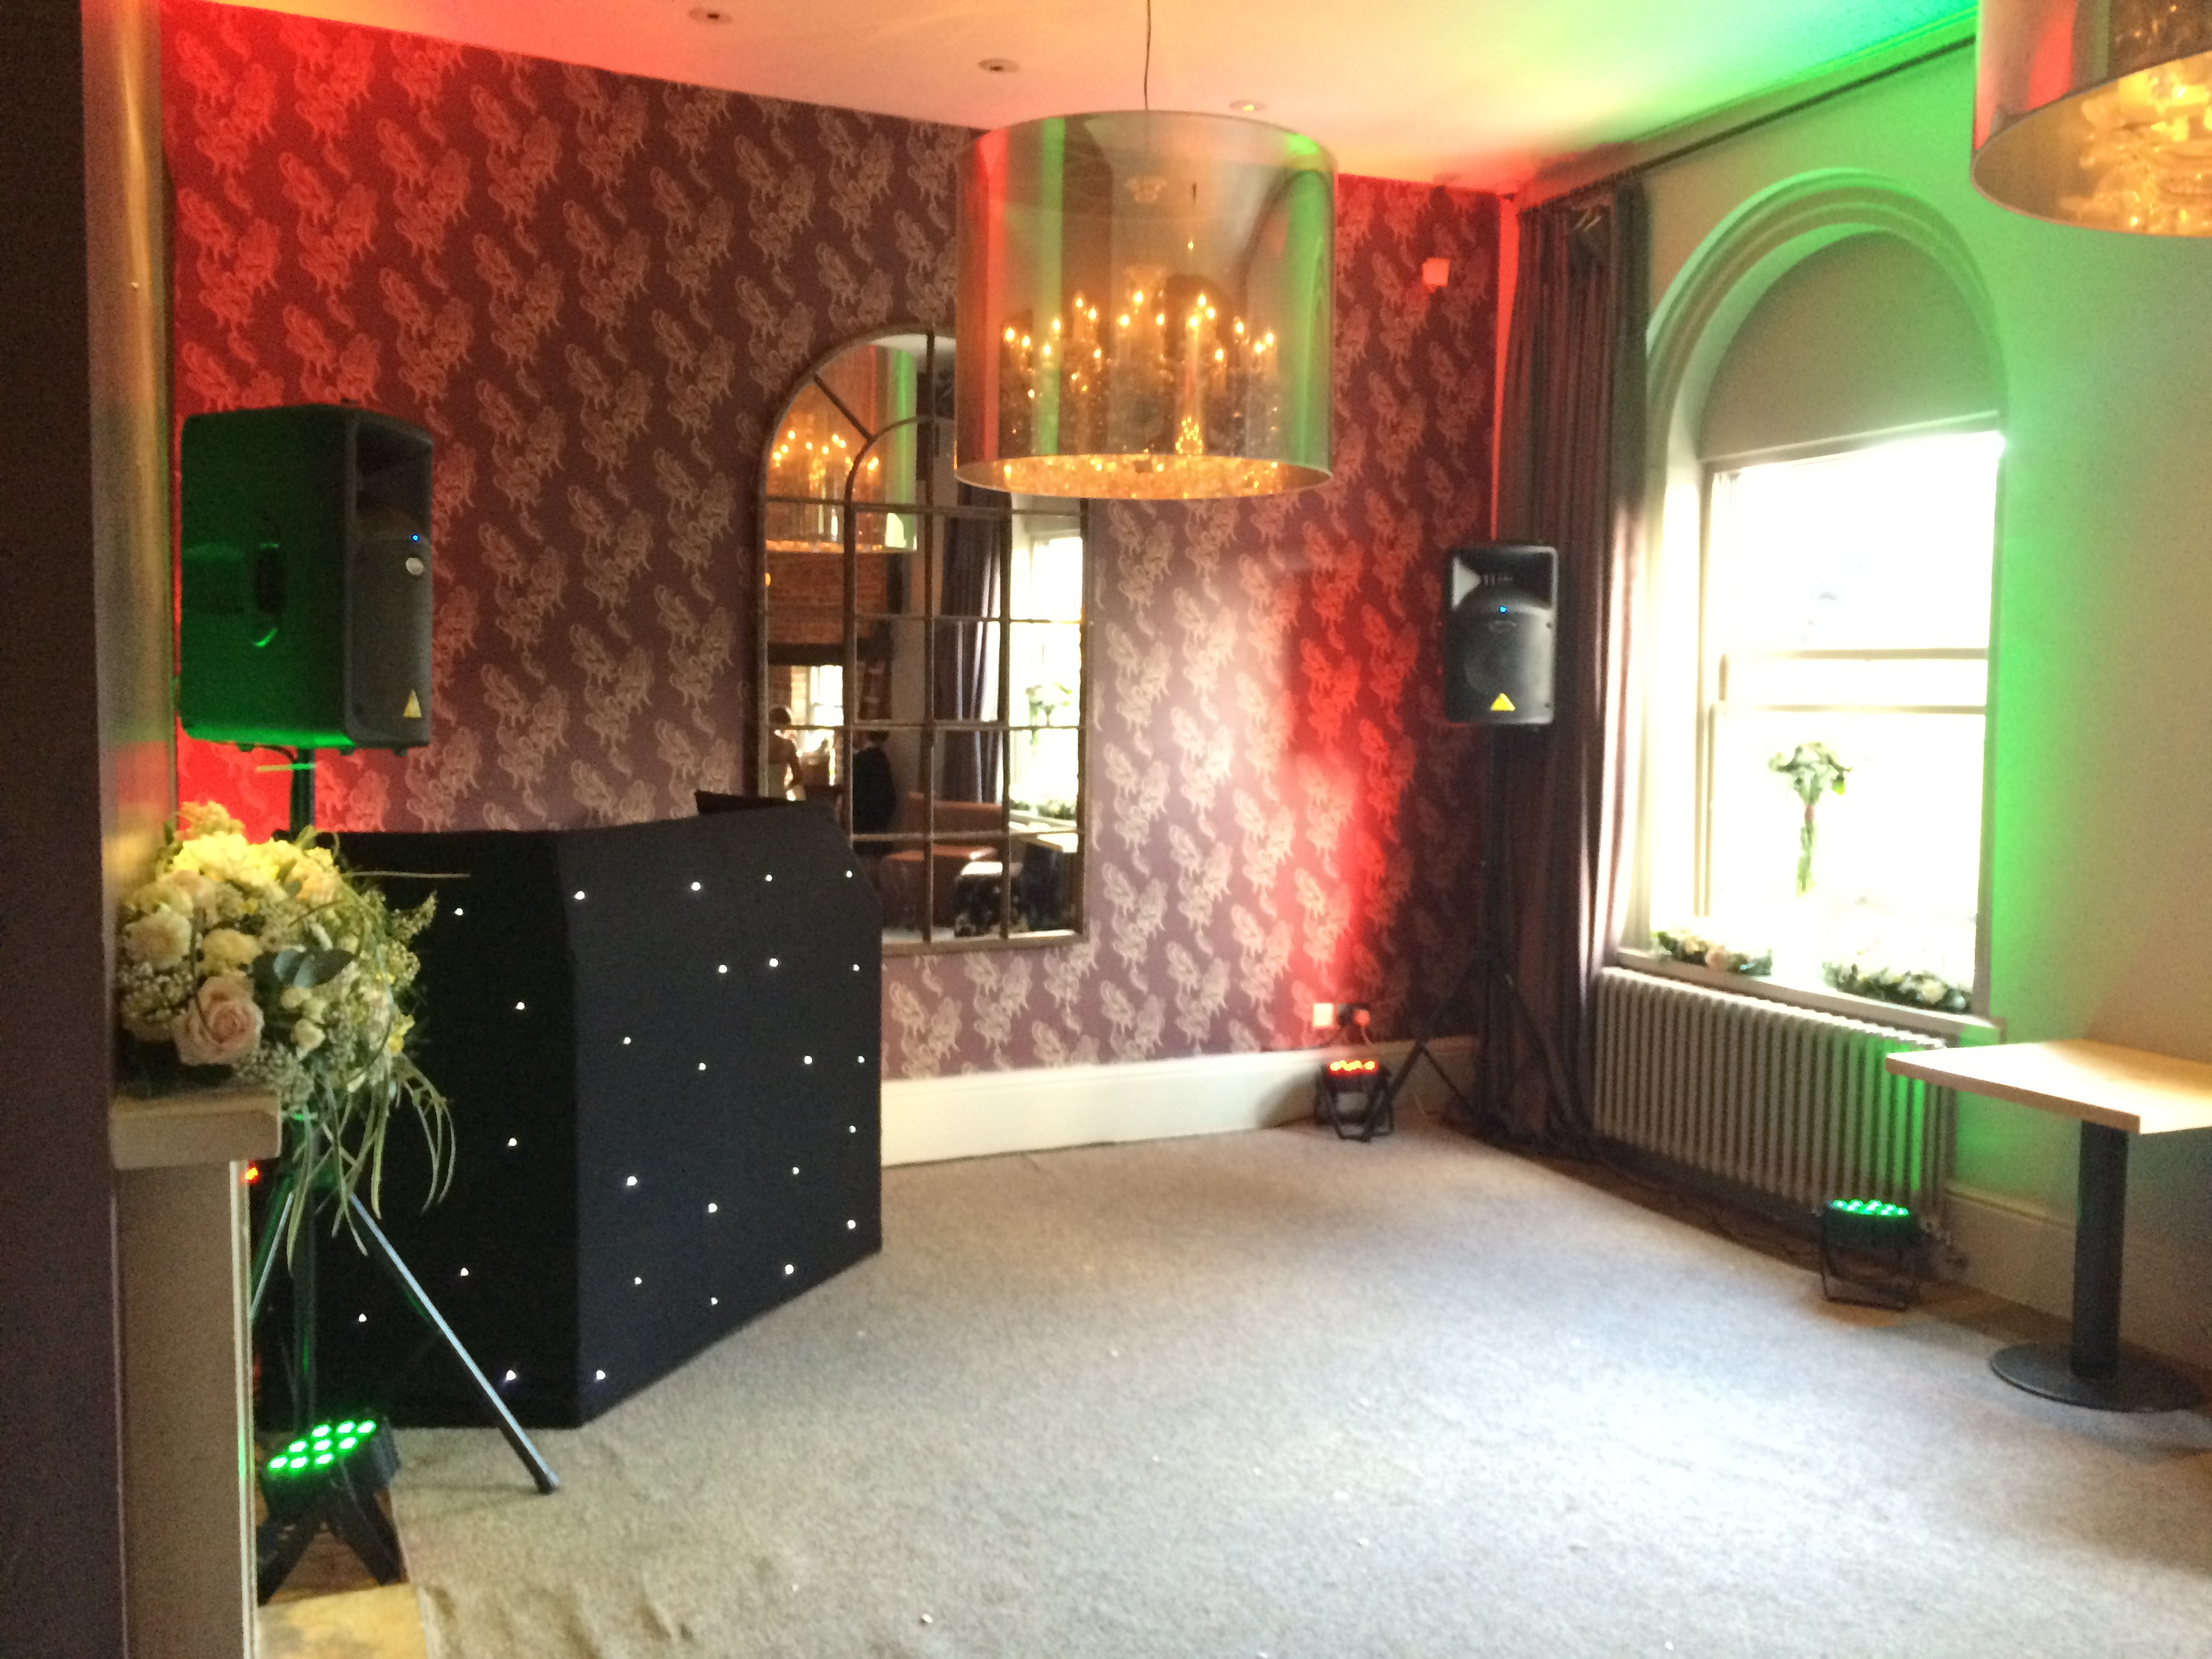 WEDDING DISCO, THE SWAN WEST MALLING